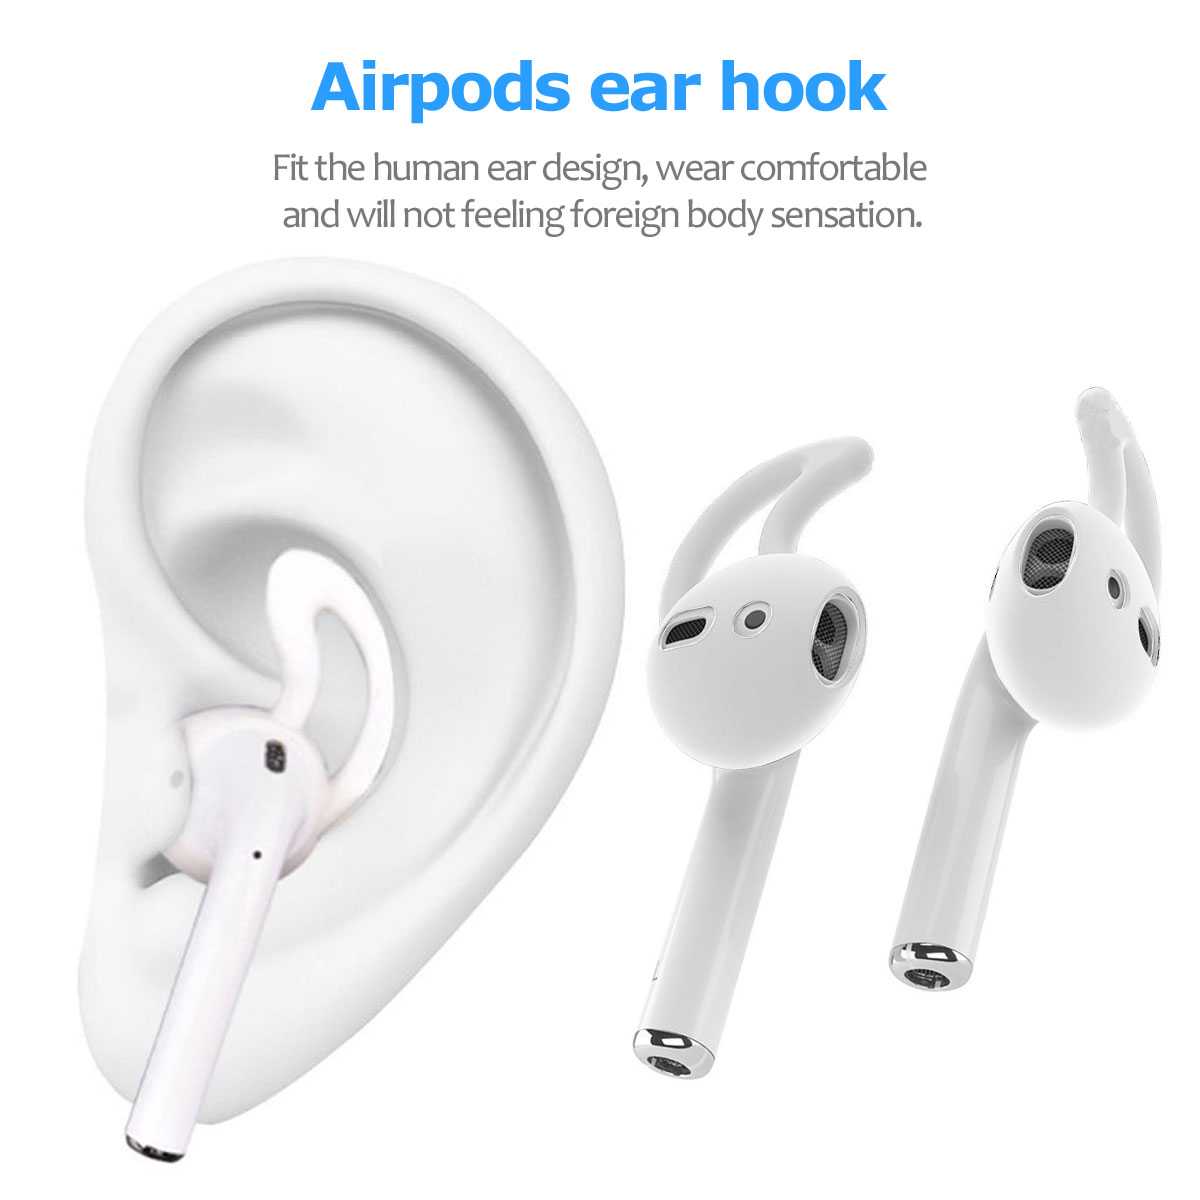 Silicone-Ruggged-Case-Cover-Earbuds-For-Apple-AirPods-2nd-Gen-Accessories-2019 thumbnail 26